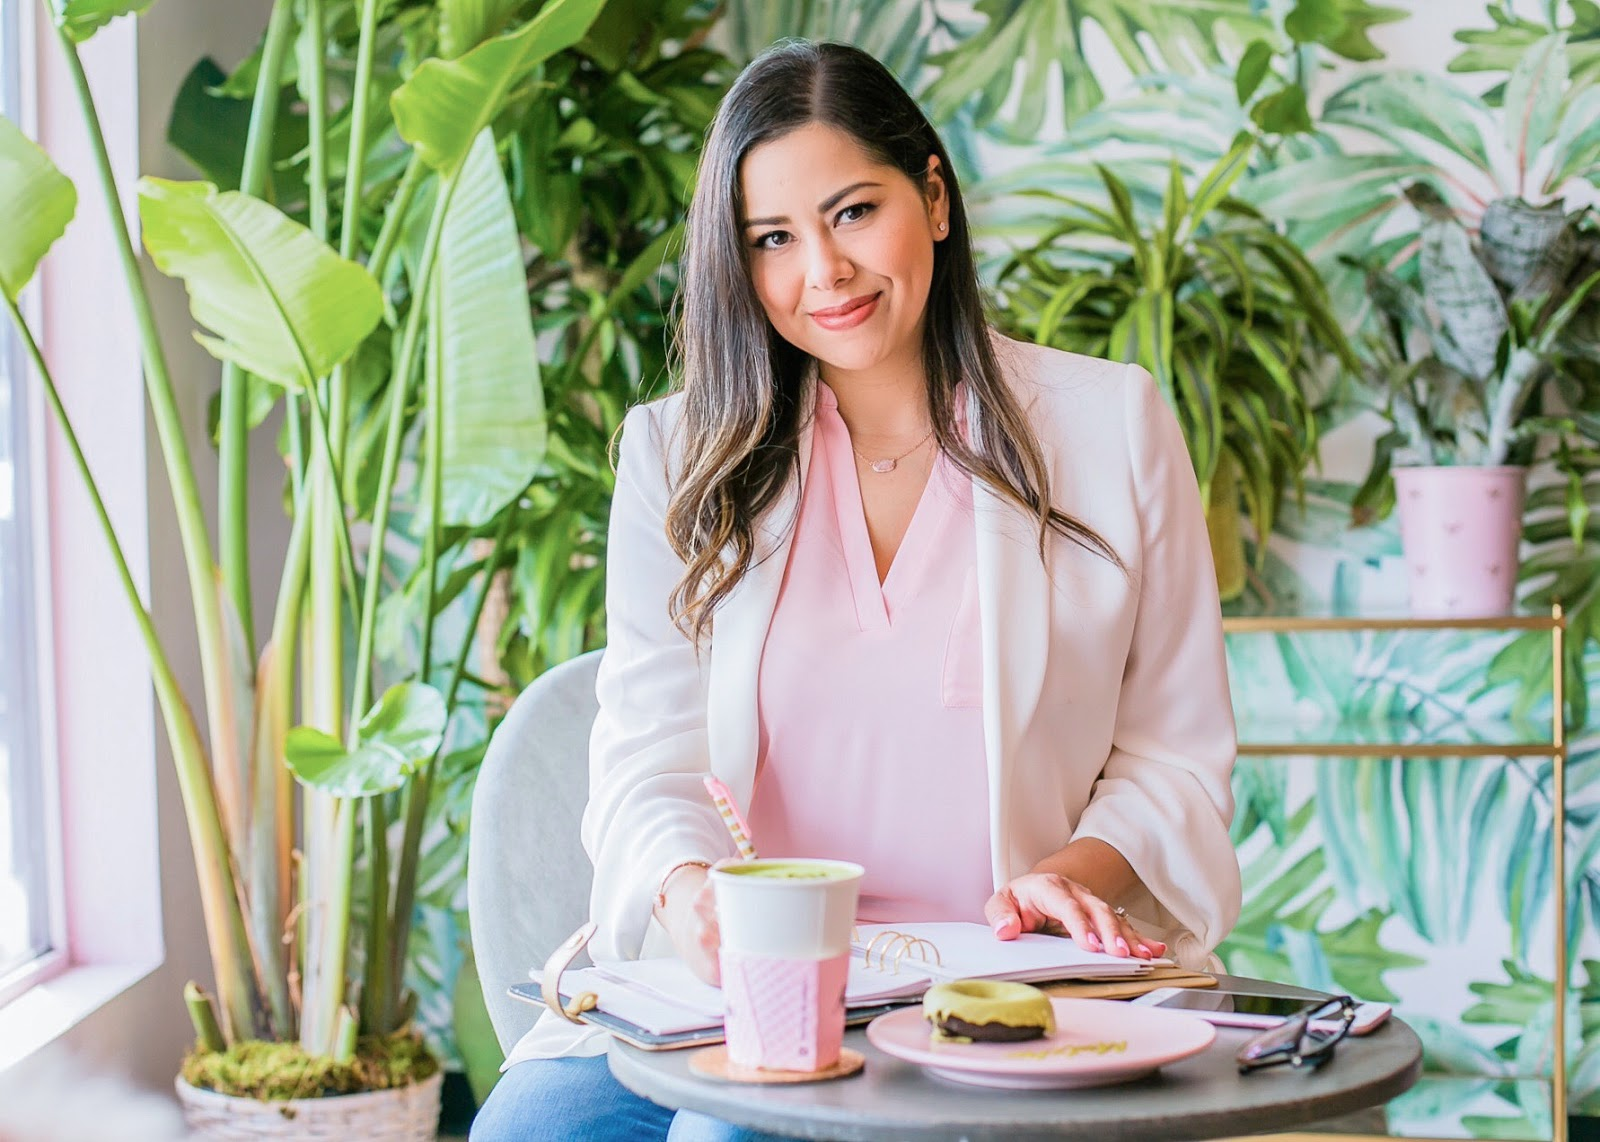 San Diego Fashion Blogger 2019, Holy Matcha San Diego